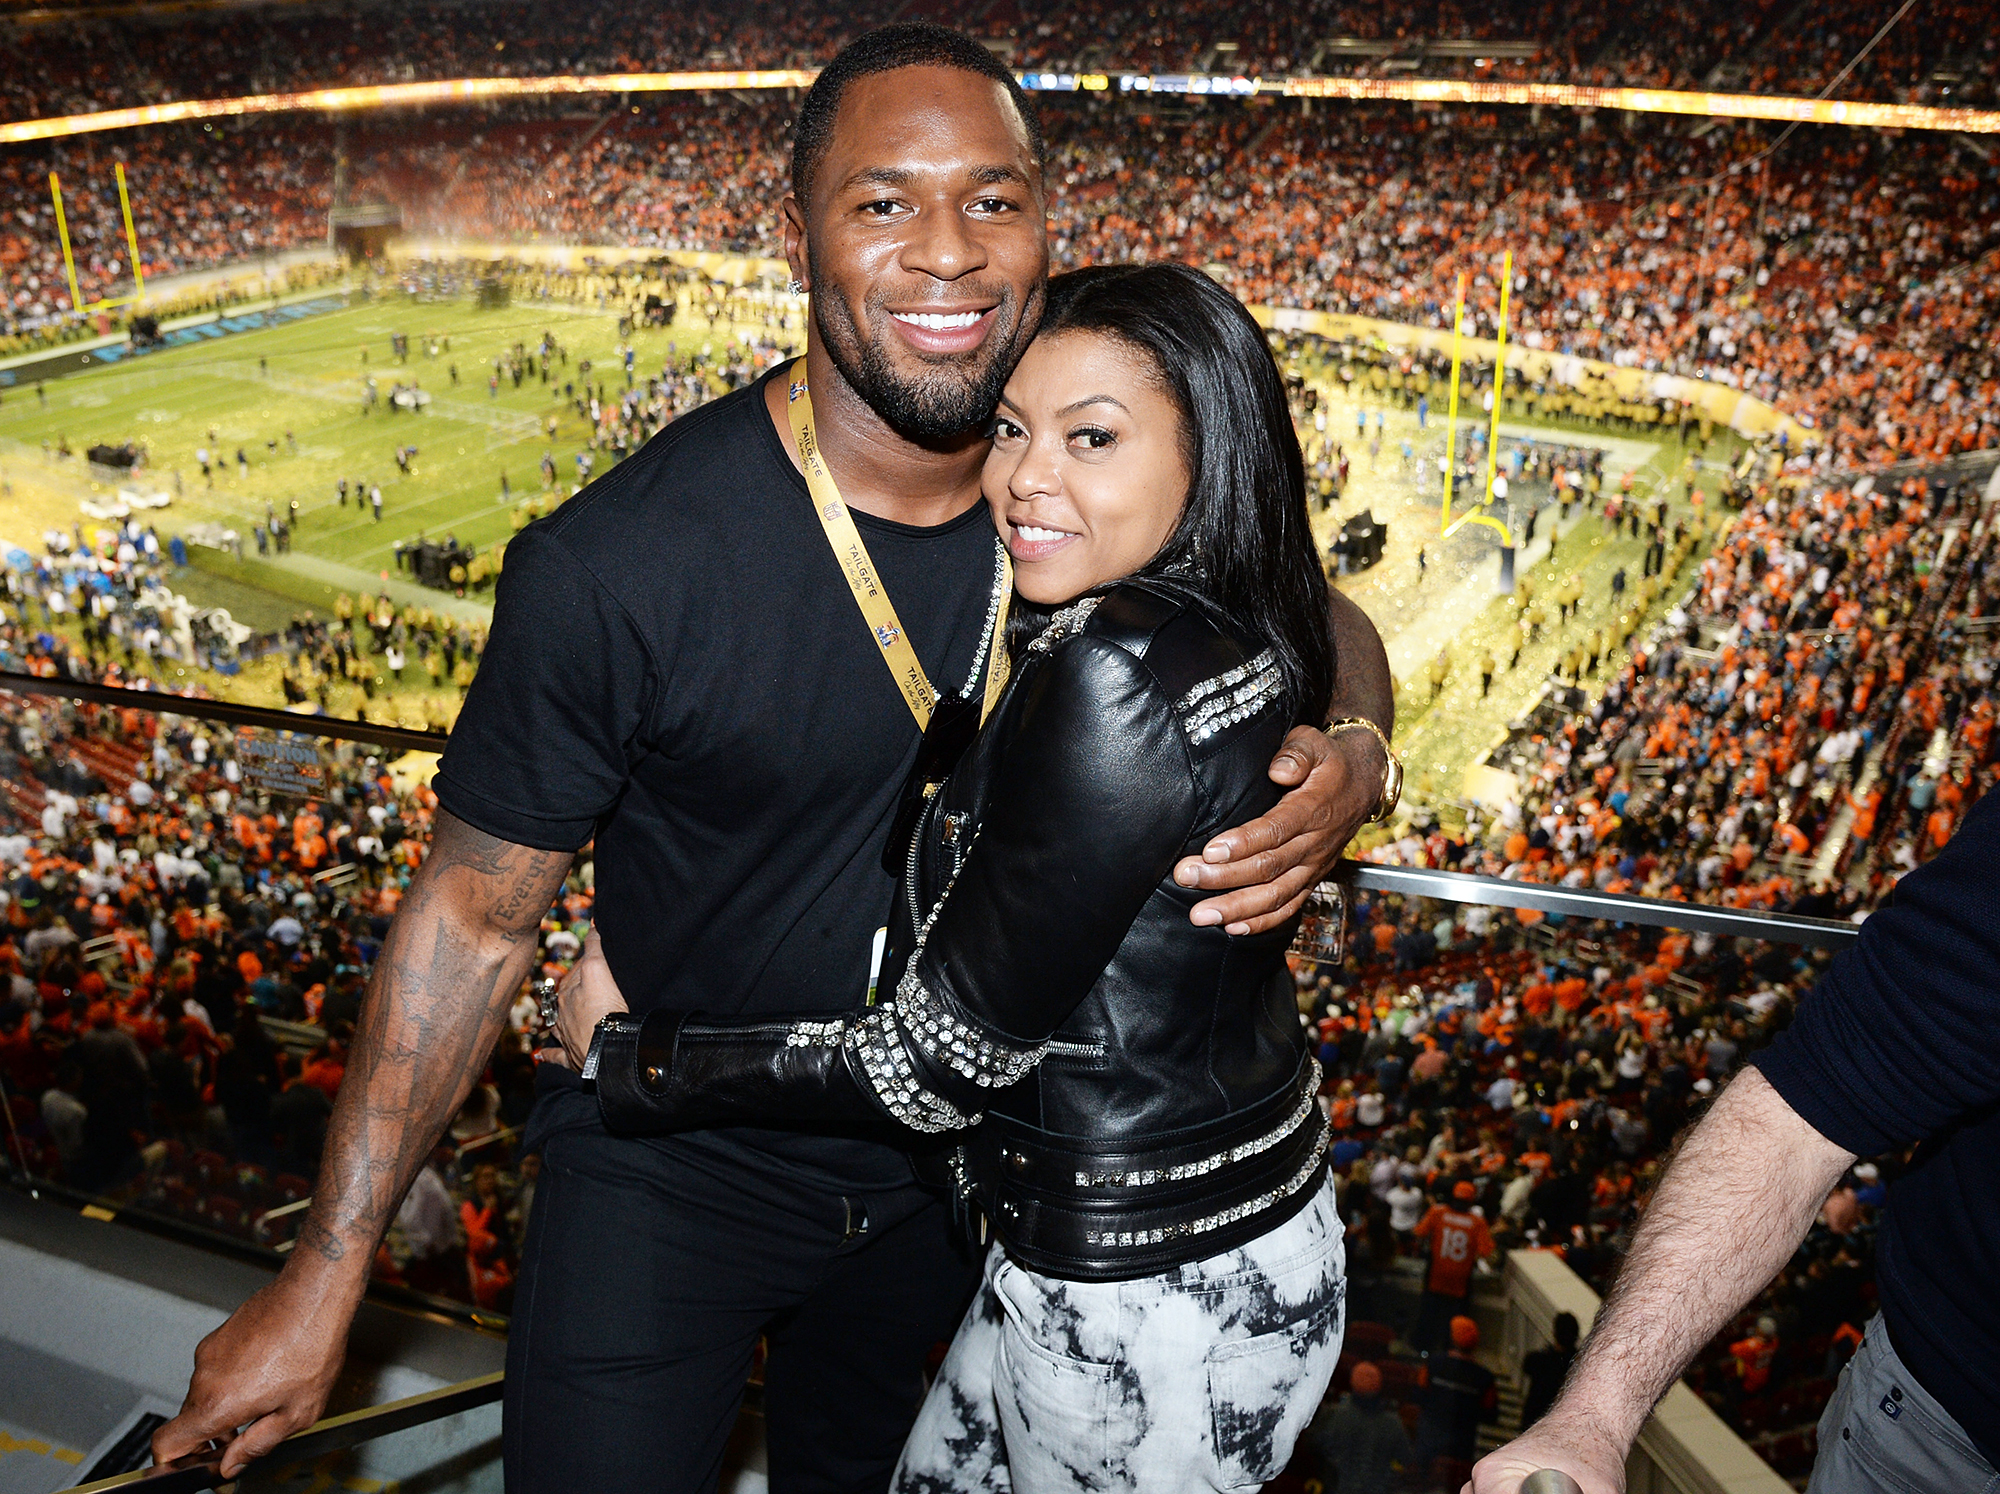 Actress Taraji P. Henson Gets Engaged To Kelvin Hayden